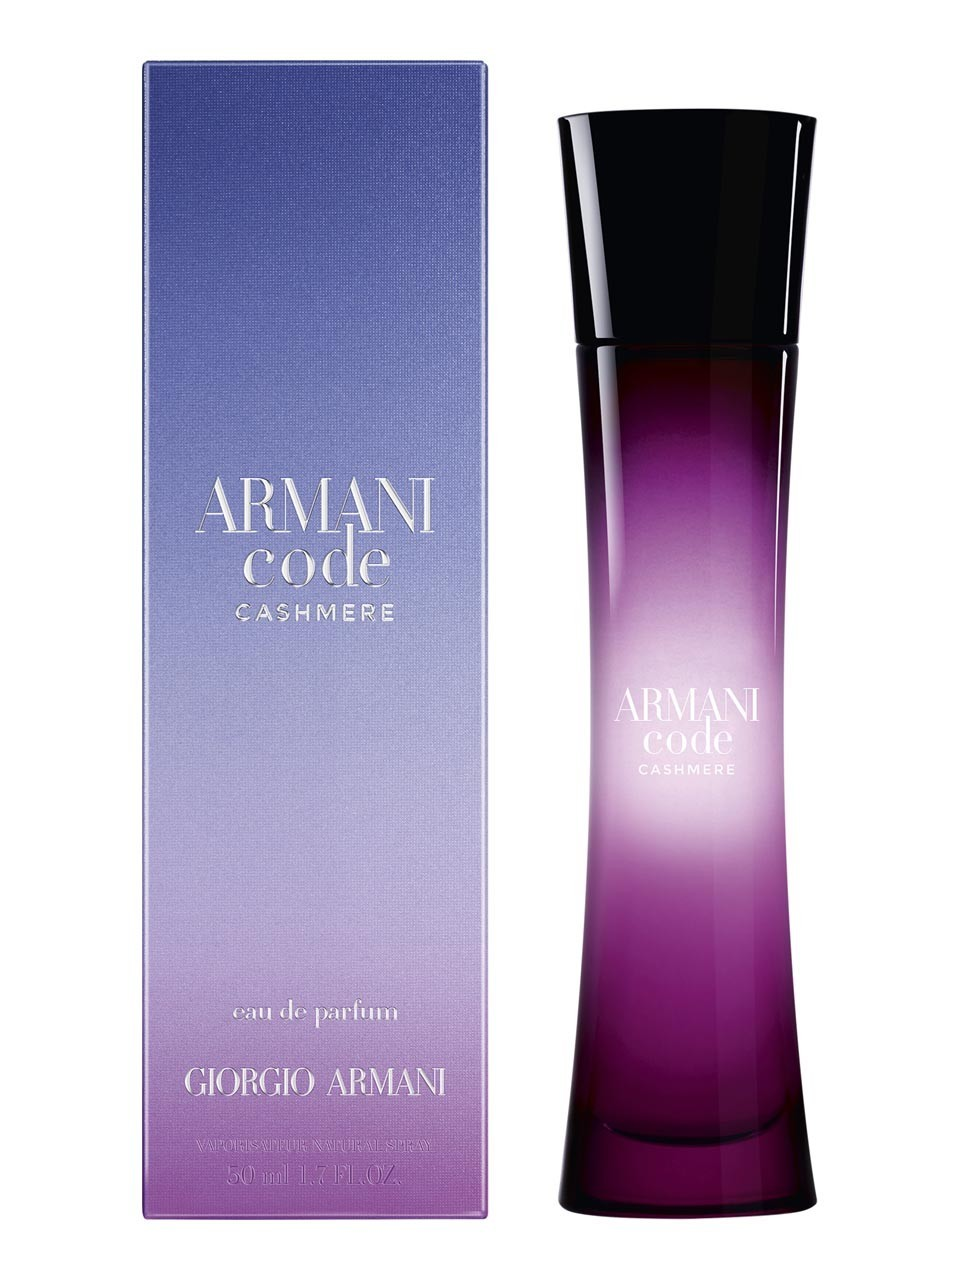 armani code cashmere reviews in perfume chickadvisor. Black Bedroom Furniture Sets. Home Design Ideas